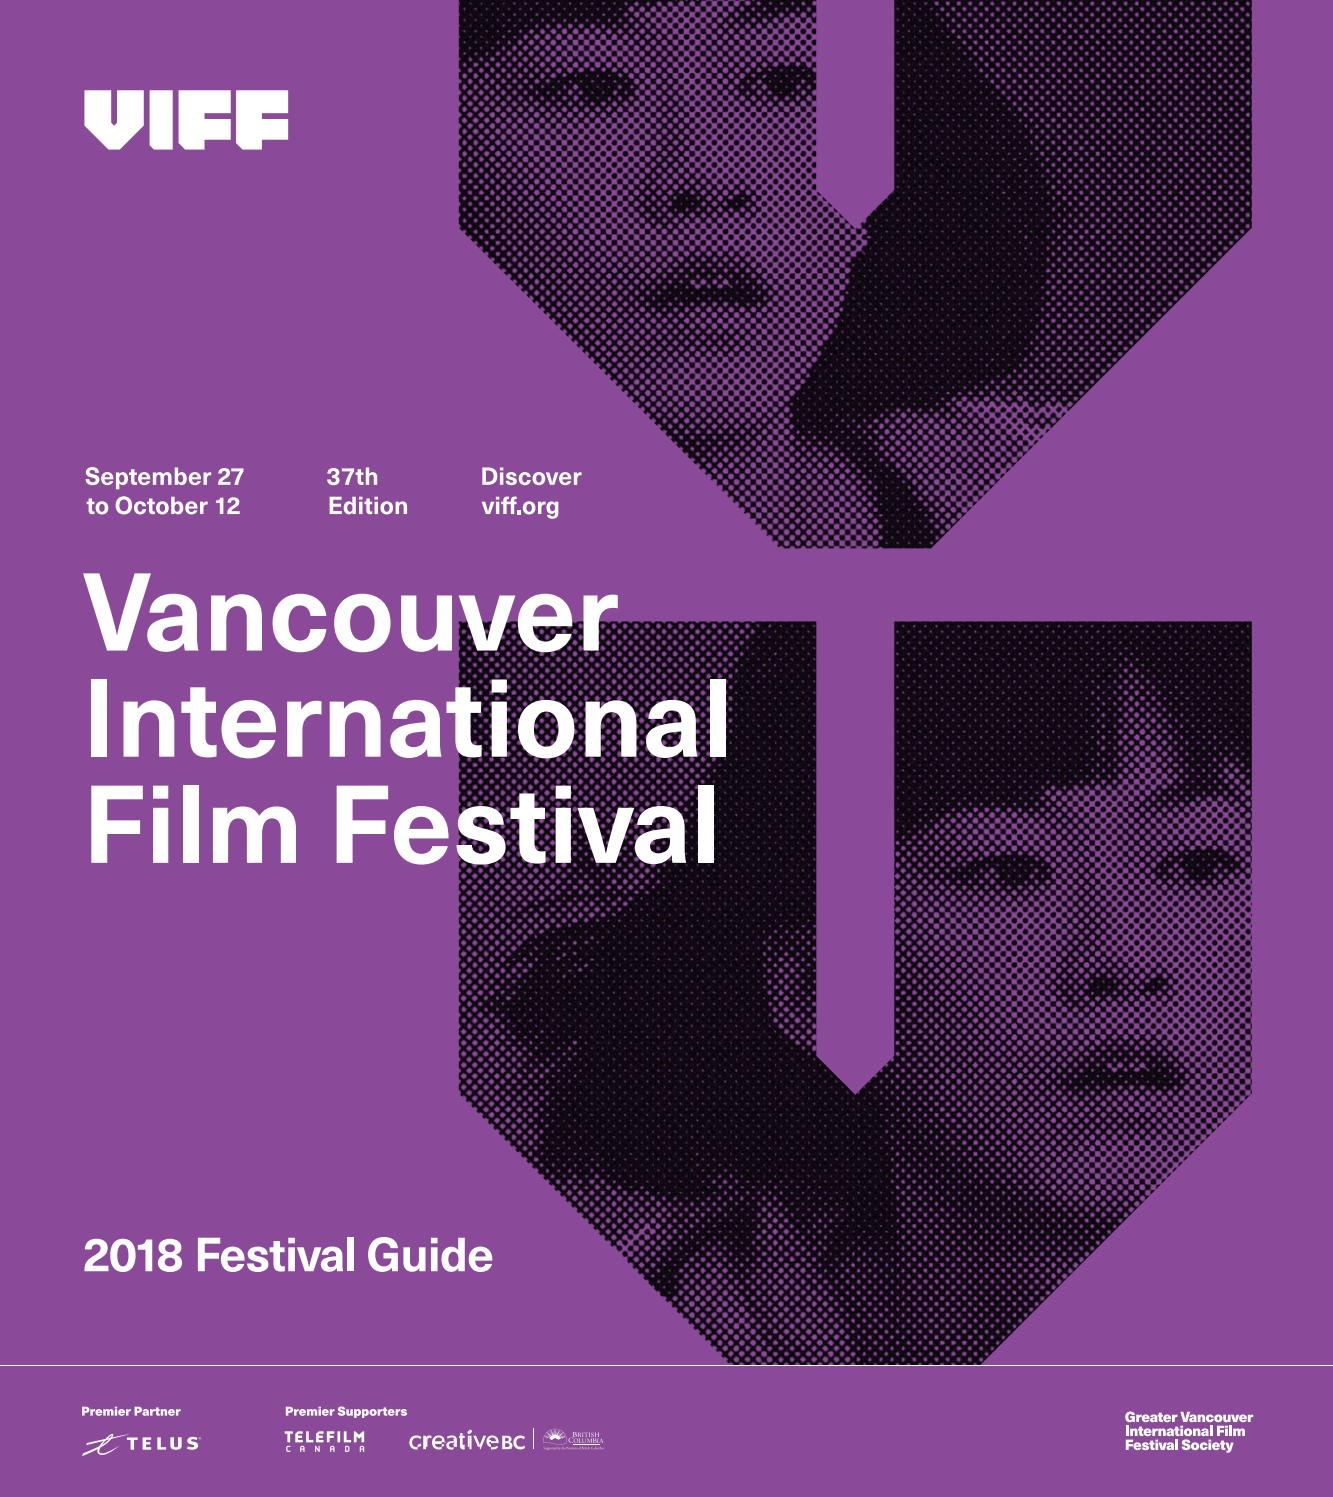 Amy Yip Playboy the vancouver international film festival program guide 2018